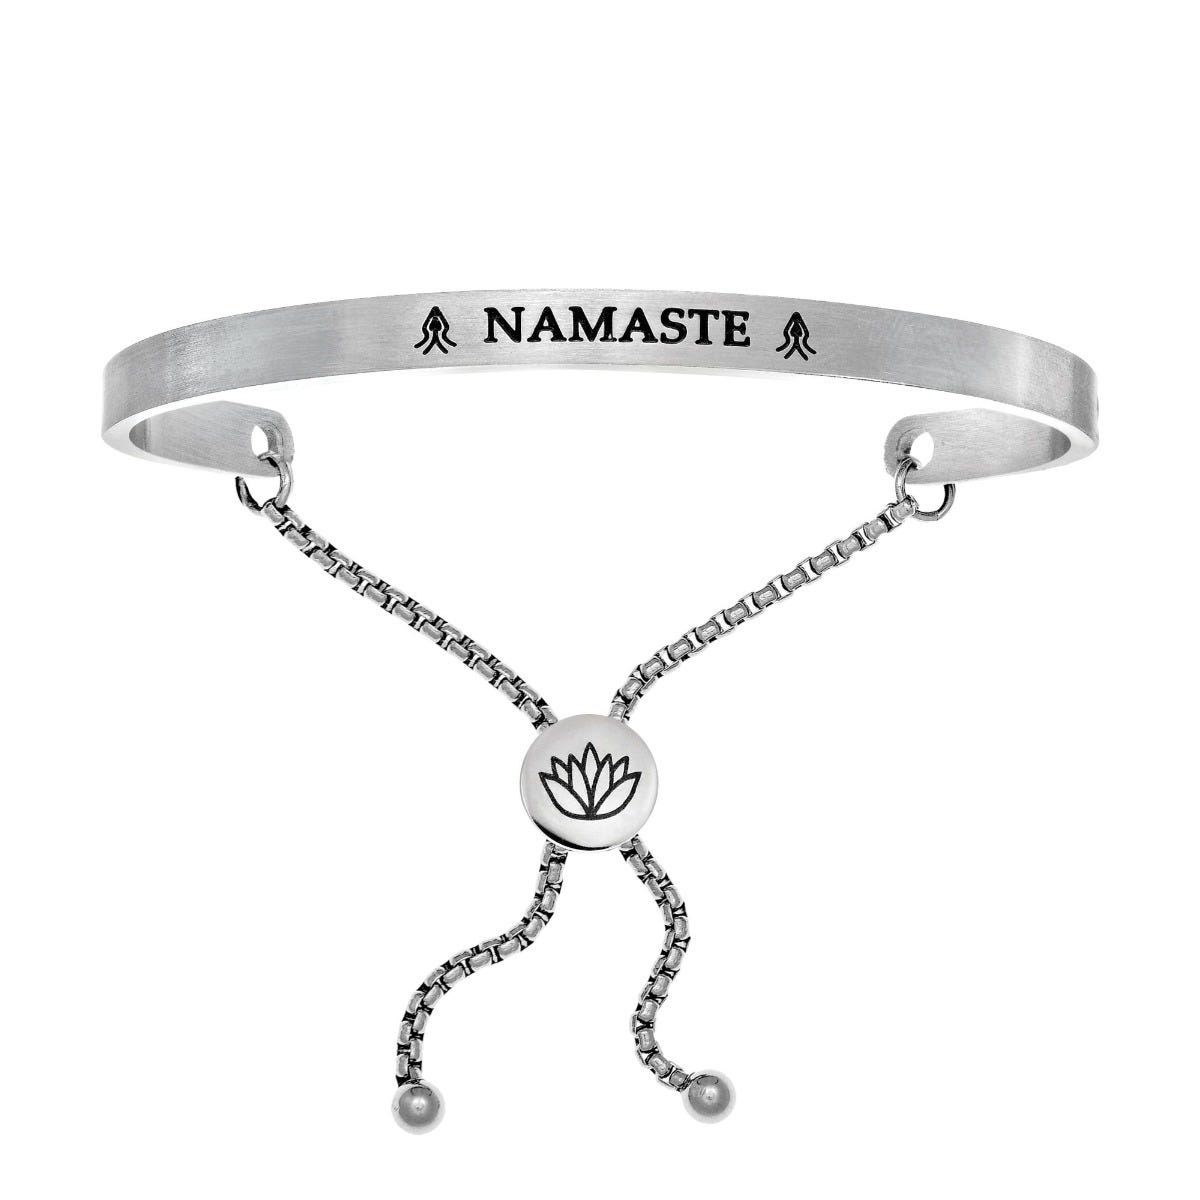 Namaste. Intuitions Bolo Bracelet in White  Stainless Steel